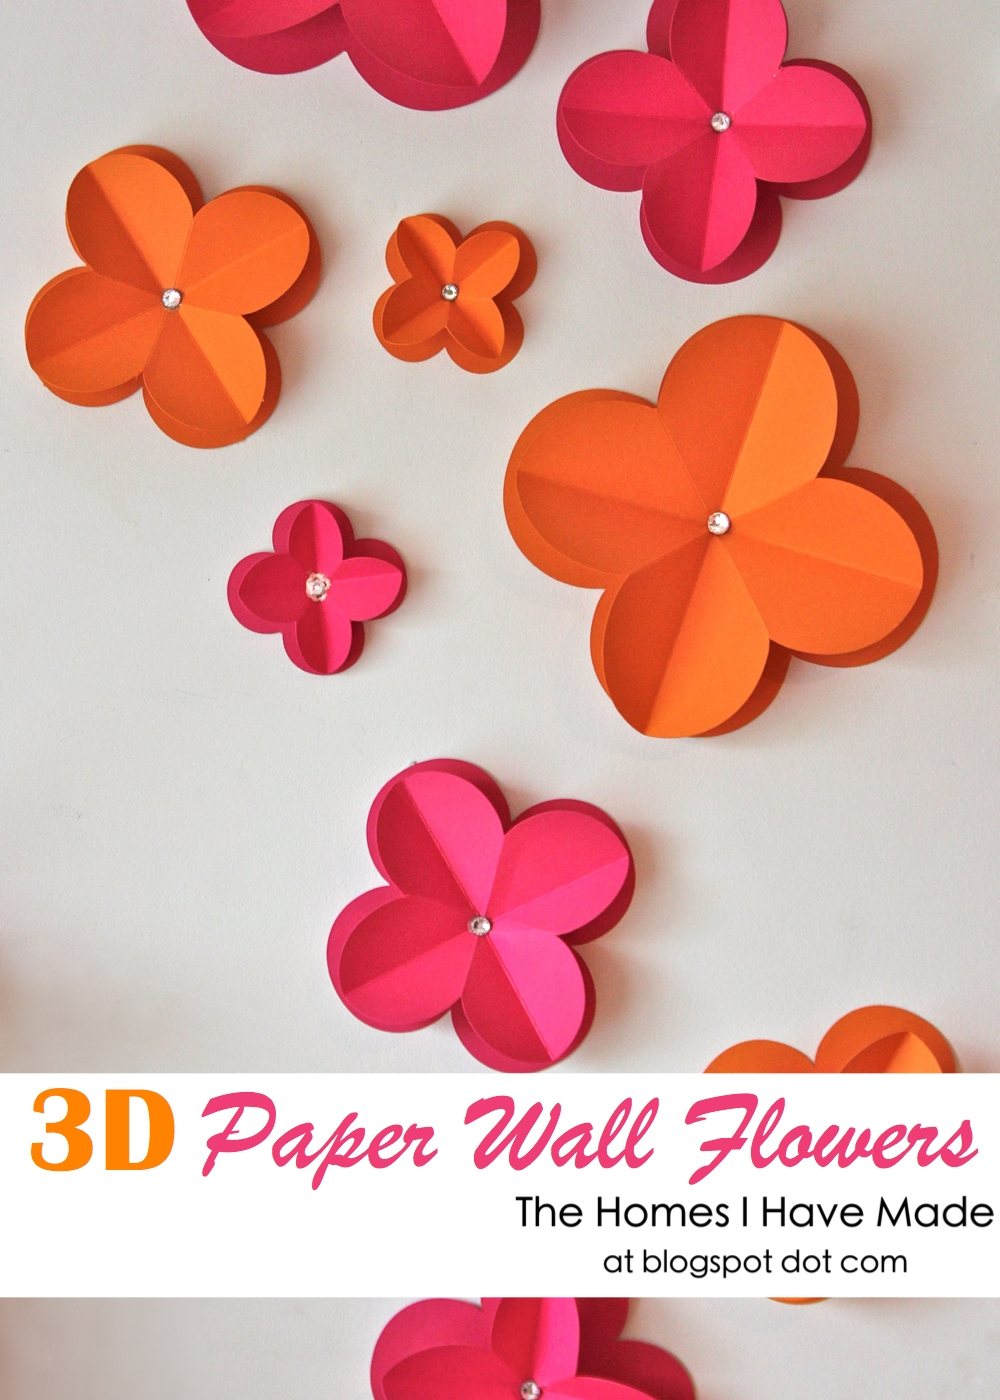 3d paper wall flowers the homes i have made simple but oh so effective 3d paper wall flowers over at positively splendid just in case you didnt pop over there for the how do details mightylinksfo Images